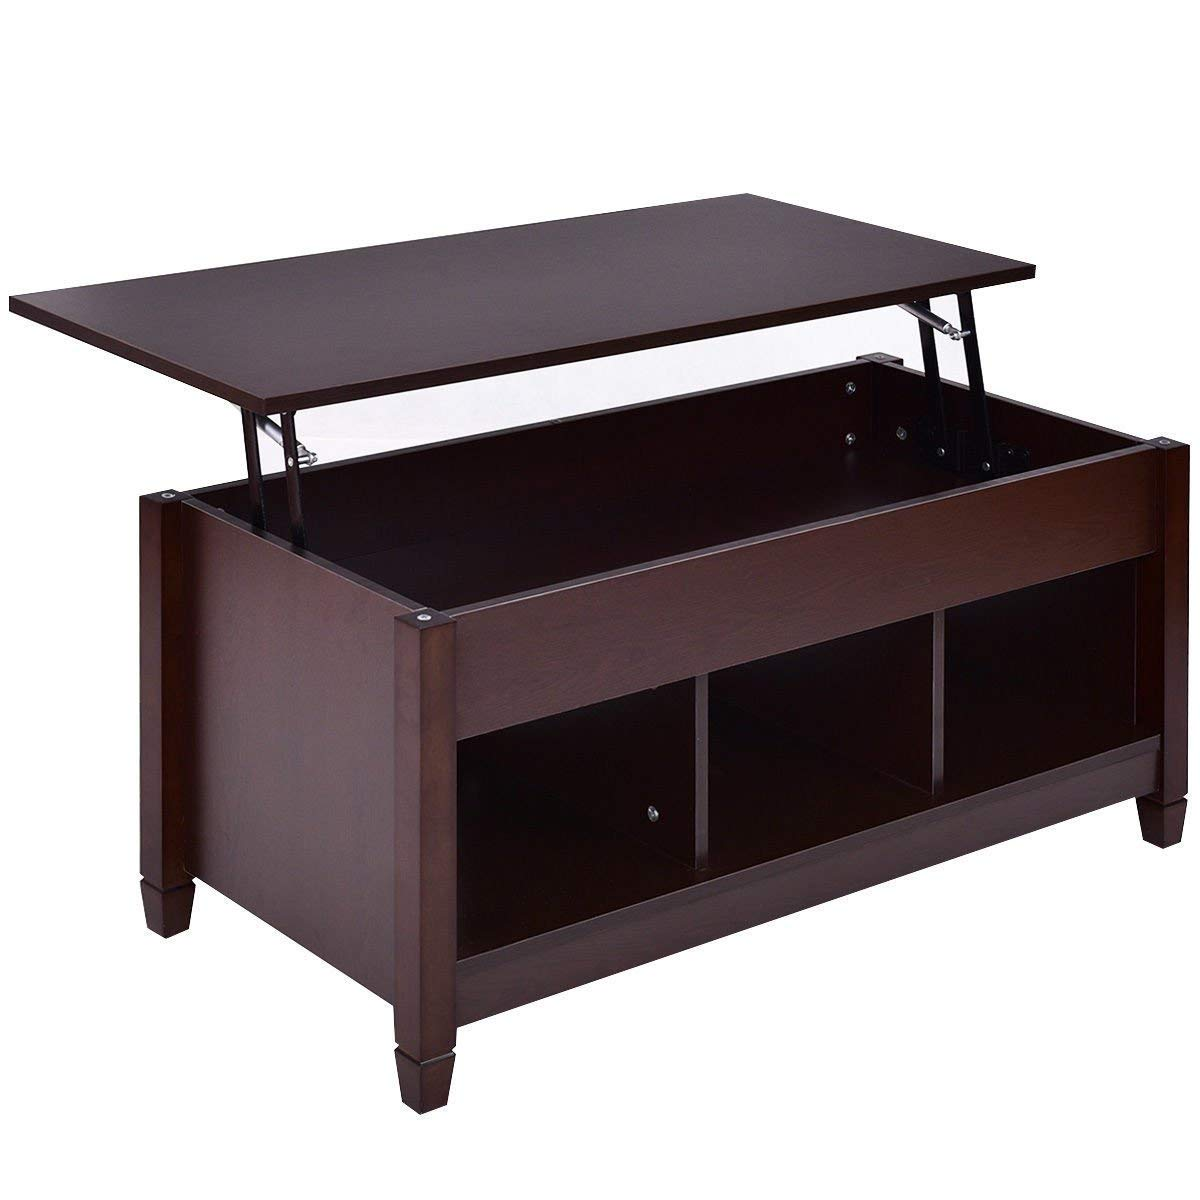 TANGKULA Coffee Table Lift Top Wood Home Living Room Modern Lift Top Storage Coffee Table w/Hidden Compartment Lift Tabletop Furniture (Brown with Lower Shelf) Lift top coffee table